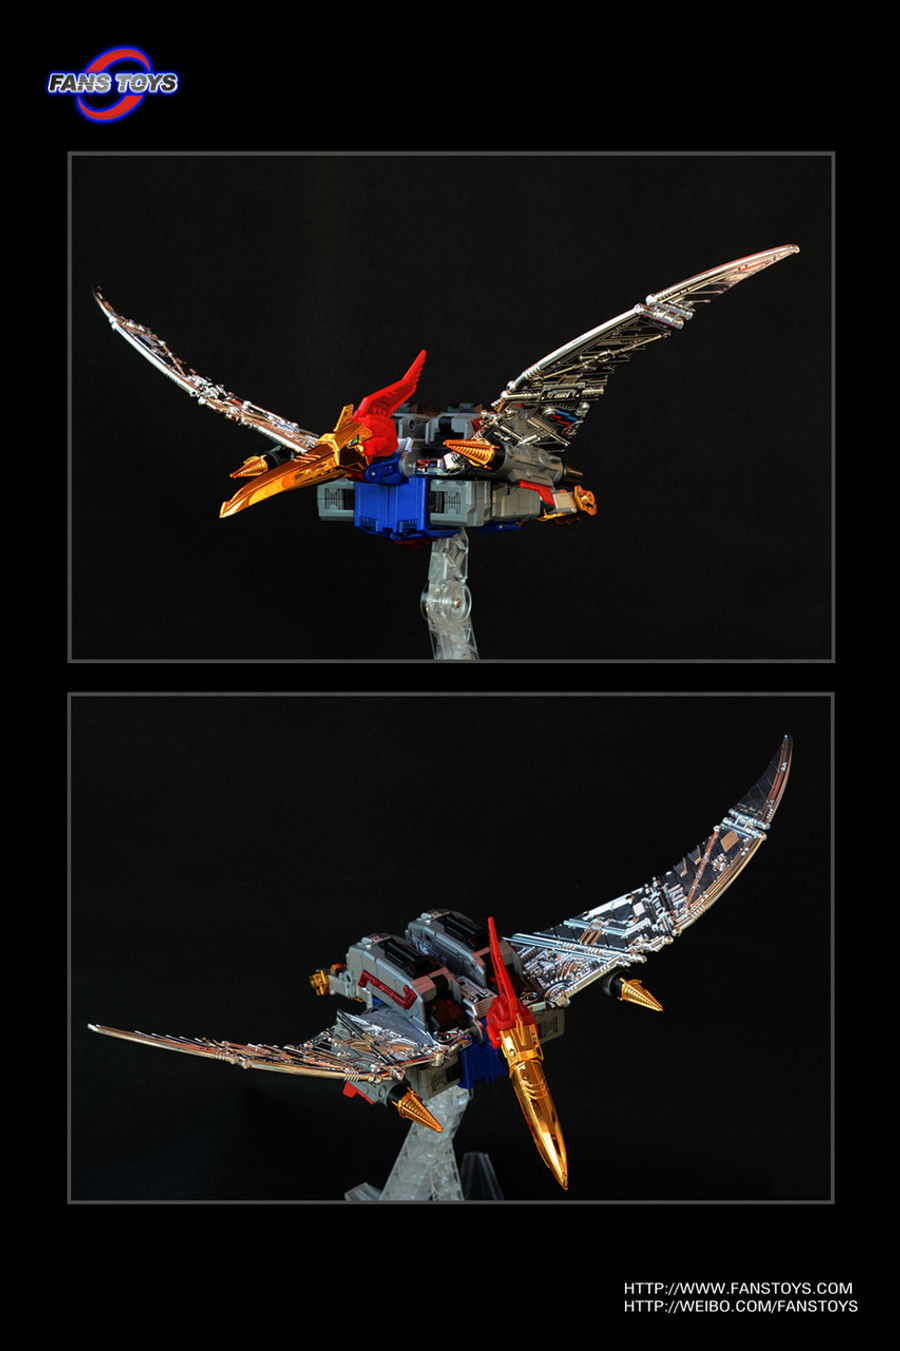 FT-05 Soar Blue Anime Version - Iron Dibots No.2 - Re-Issue